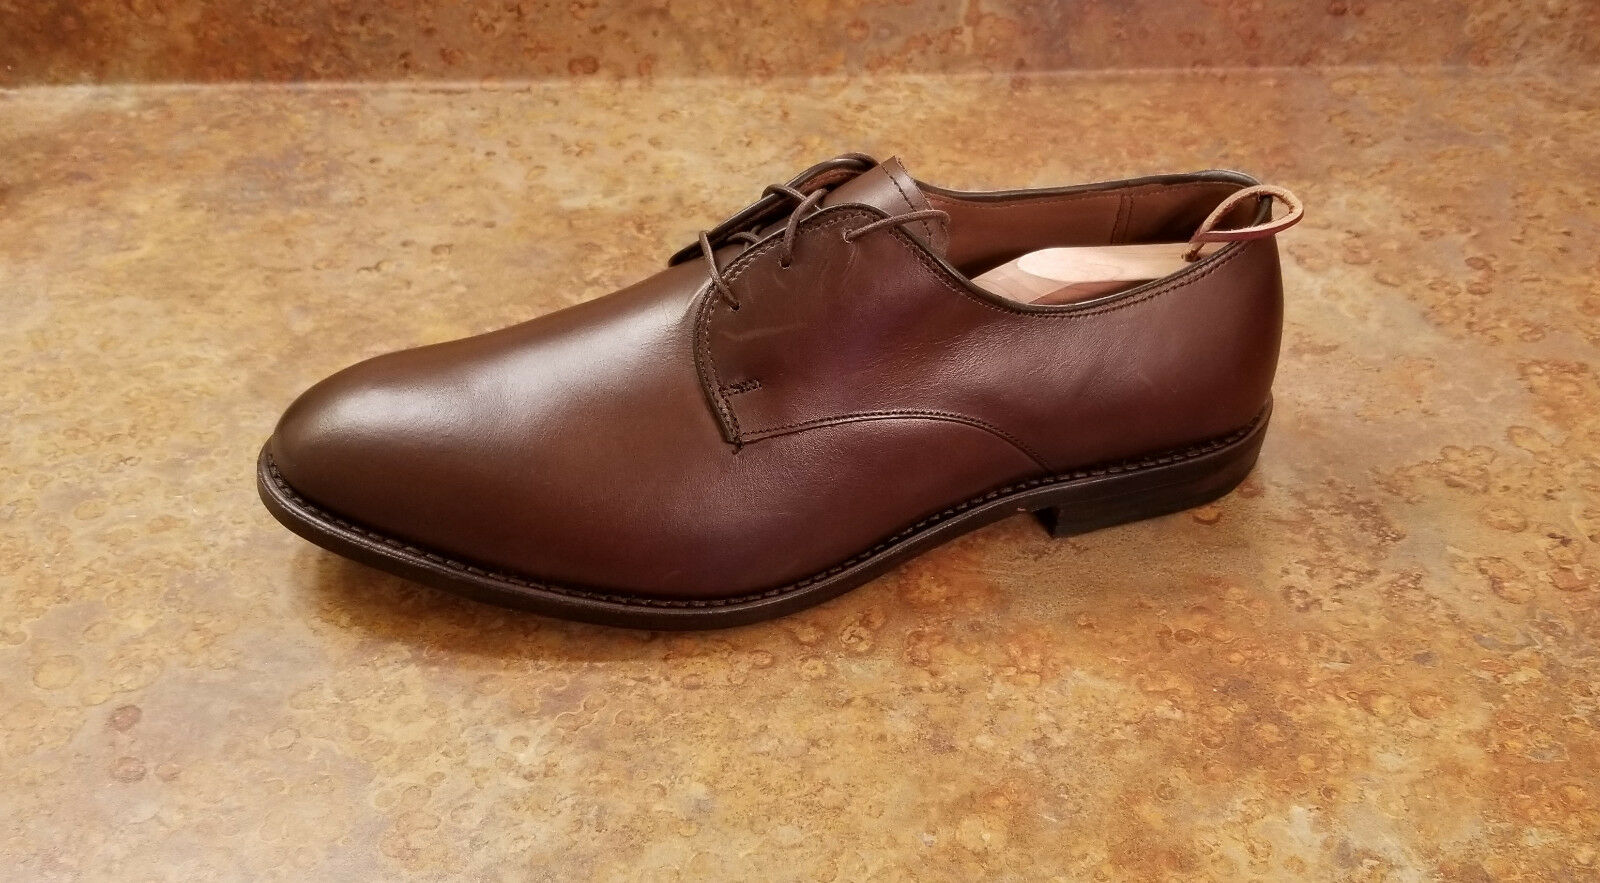 New  Allen Edmonds 'Kenilworth' Derby Oxfords Marroneee Leather Mens 12 3E MSRP  395